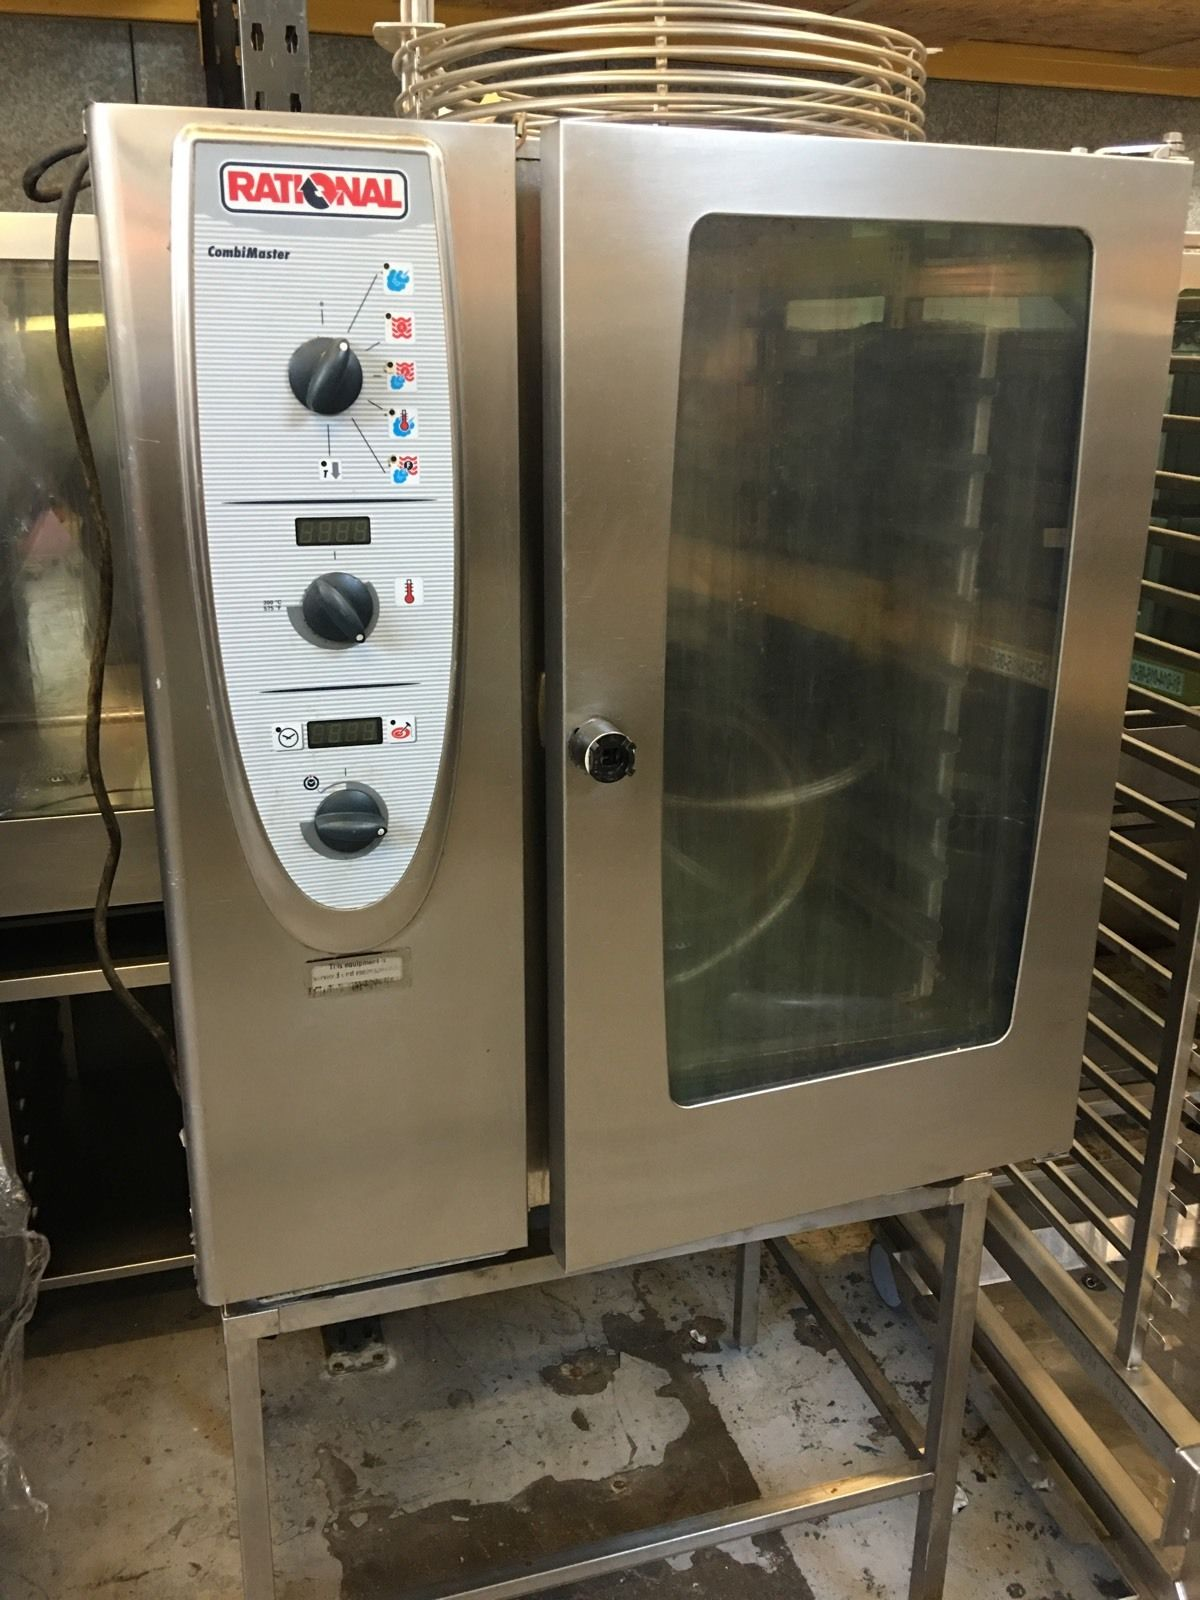 RATIONAL CM 101 G COMBIMASTER 10 GRID peri peri 1 Phase Rare To Find Gas 121926406524 rational cm 101 g combimaster 10 grid peri peri gas used rational cm101 wiring diagram at reclaimingppi.co